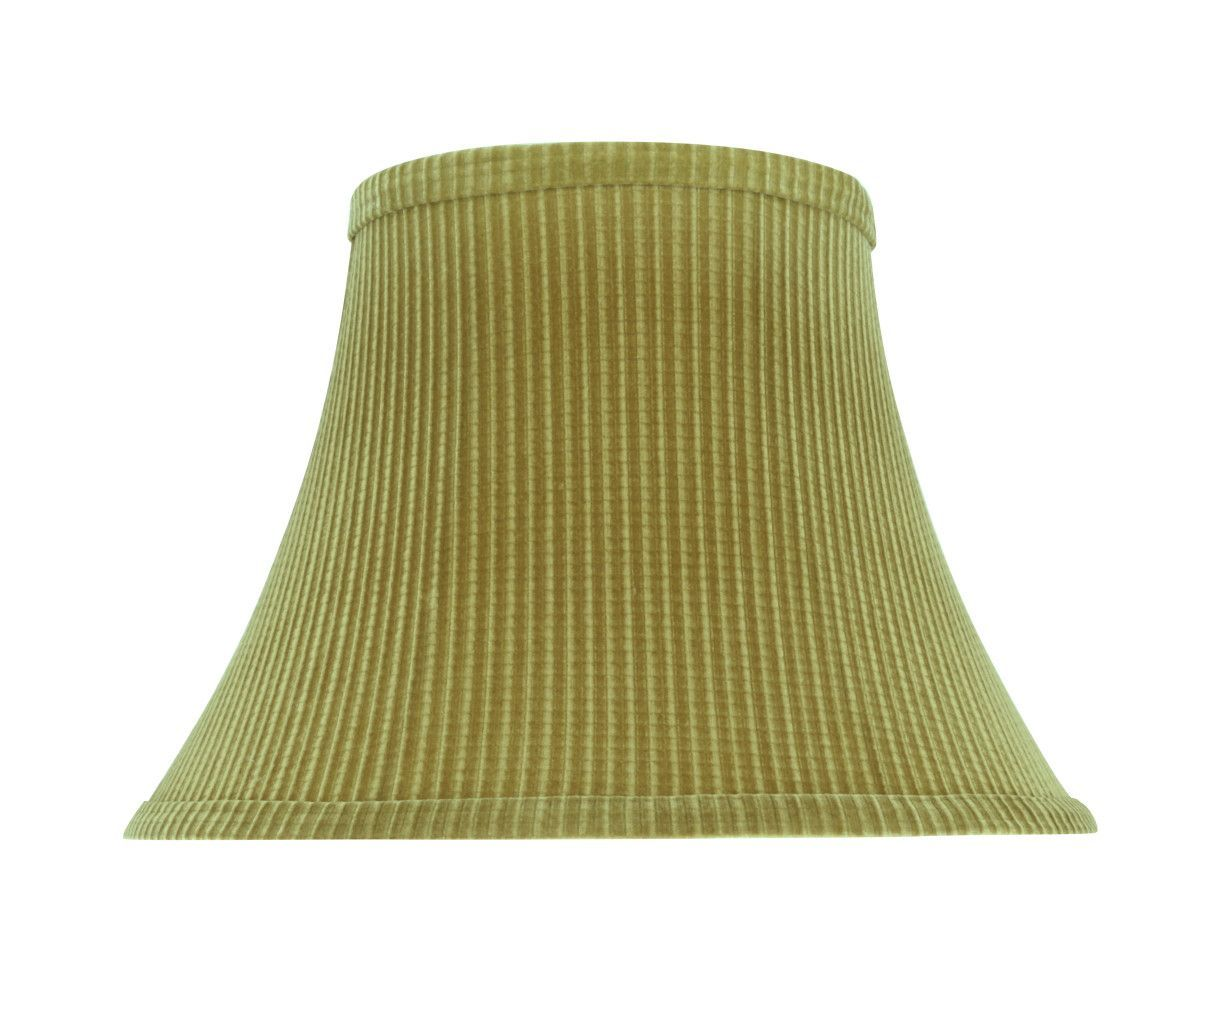 30211 transitional bell shape spider construction lamp shade in 30211 transitional bell shape spider construction lamp shade in brown green 13 wide 7 x 13 aloadofball Gallery